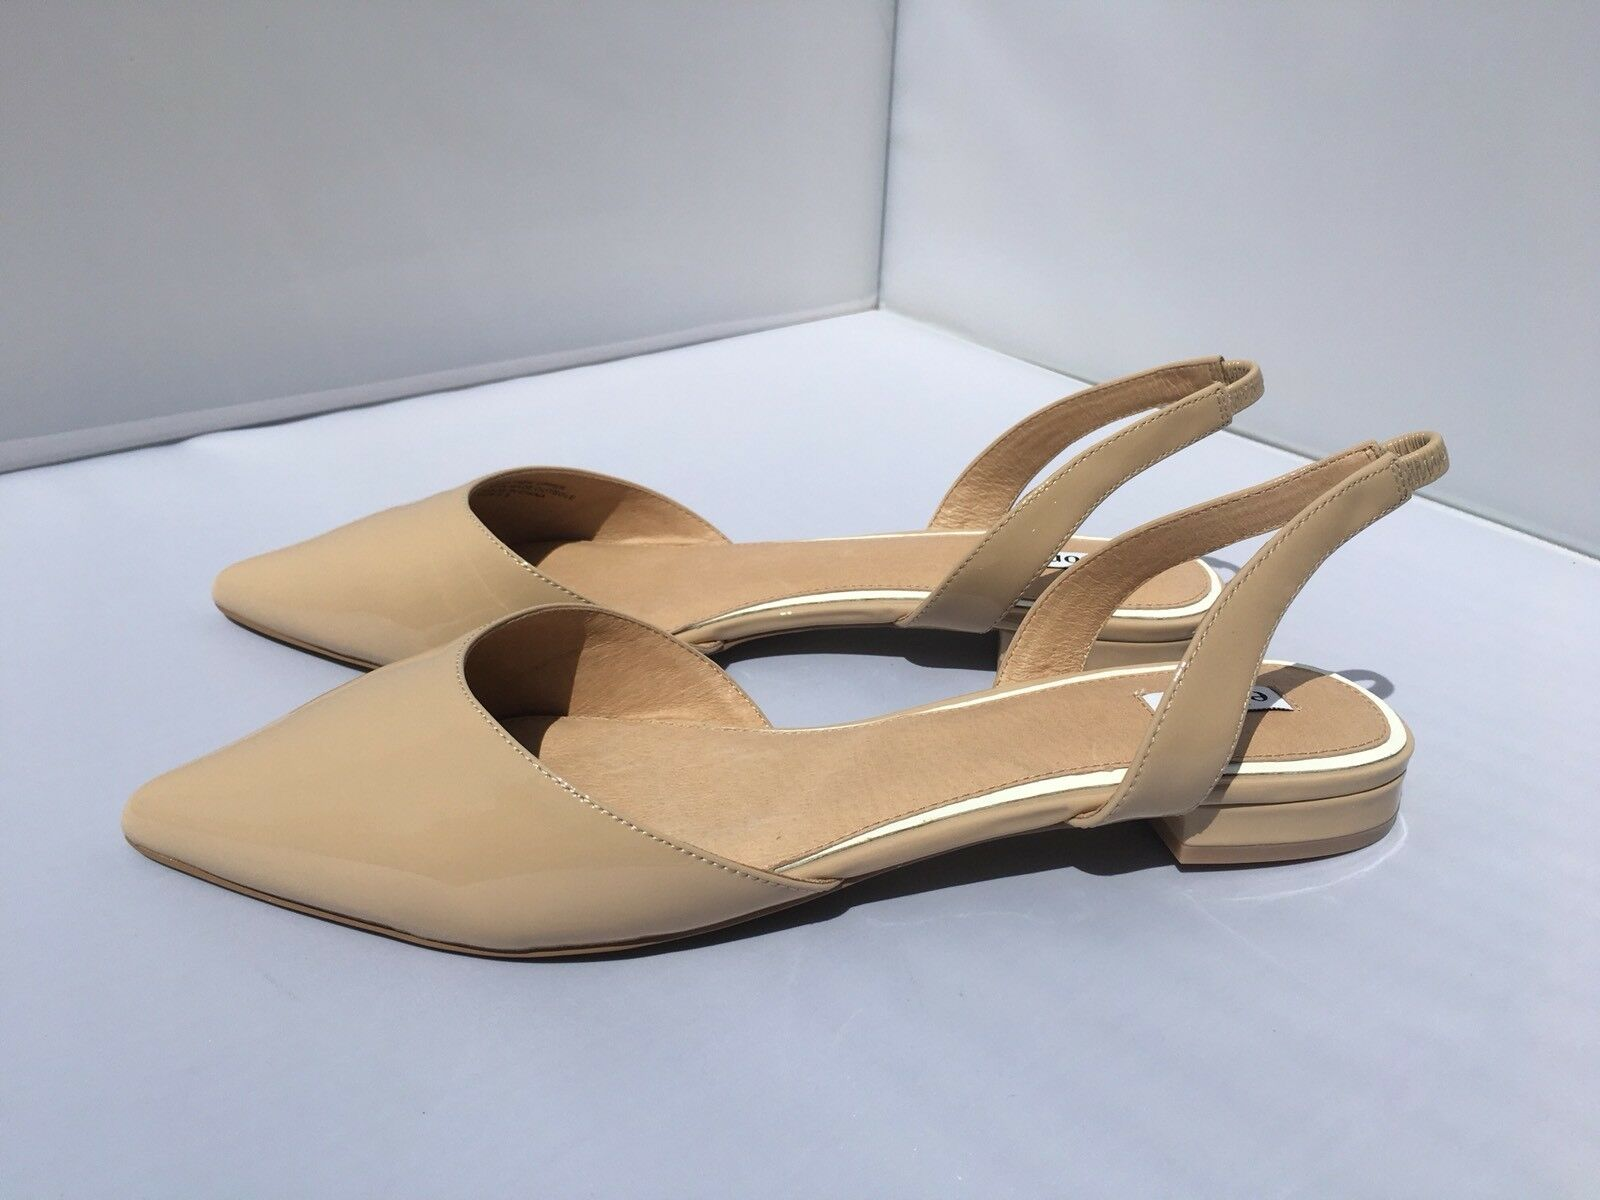 Elorie Pointed-toe Slingback Flats Nude Patent Leder Größe 9.5 to 10 New in Box